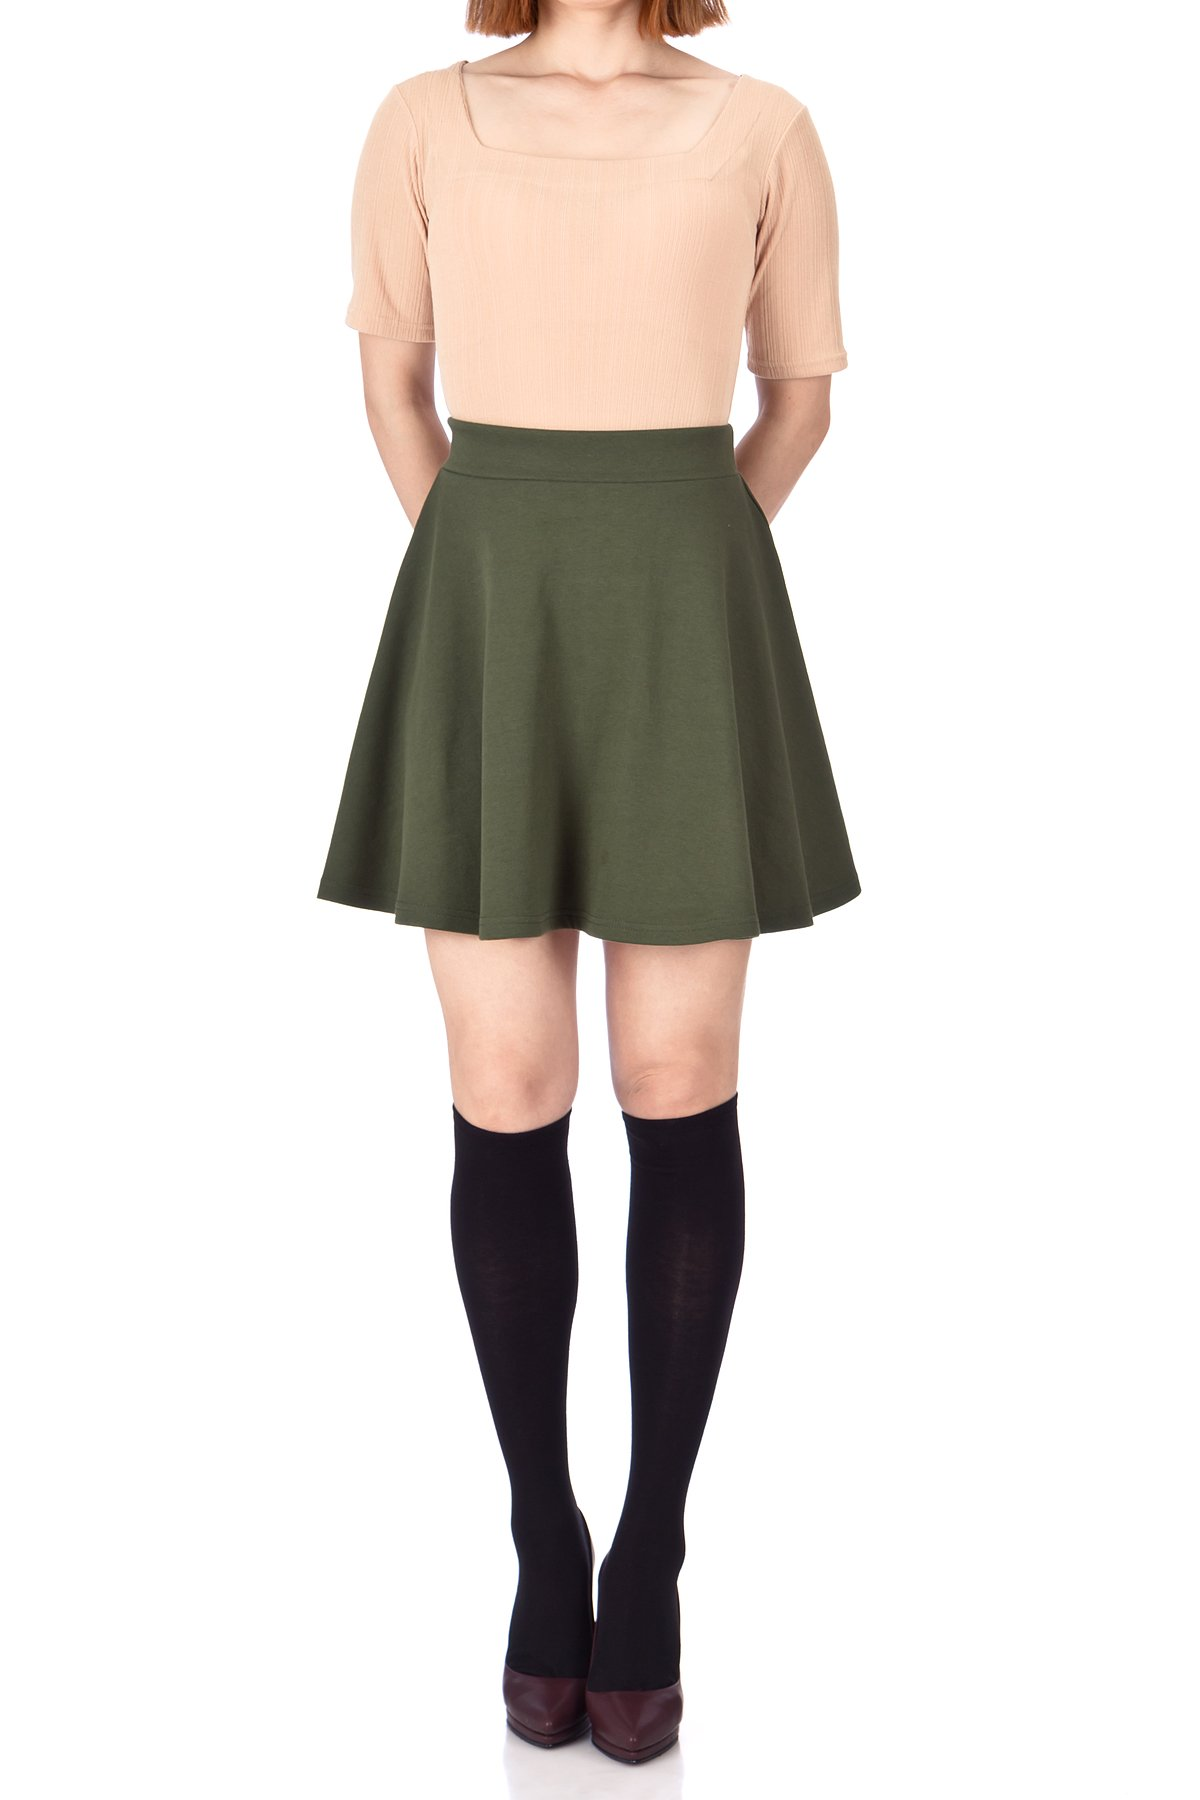 Basic Solid Stretchy Cotton High Waist line Flared Skater Mini Skirt Khaki 02